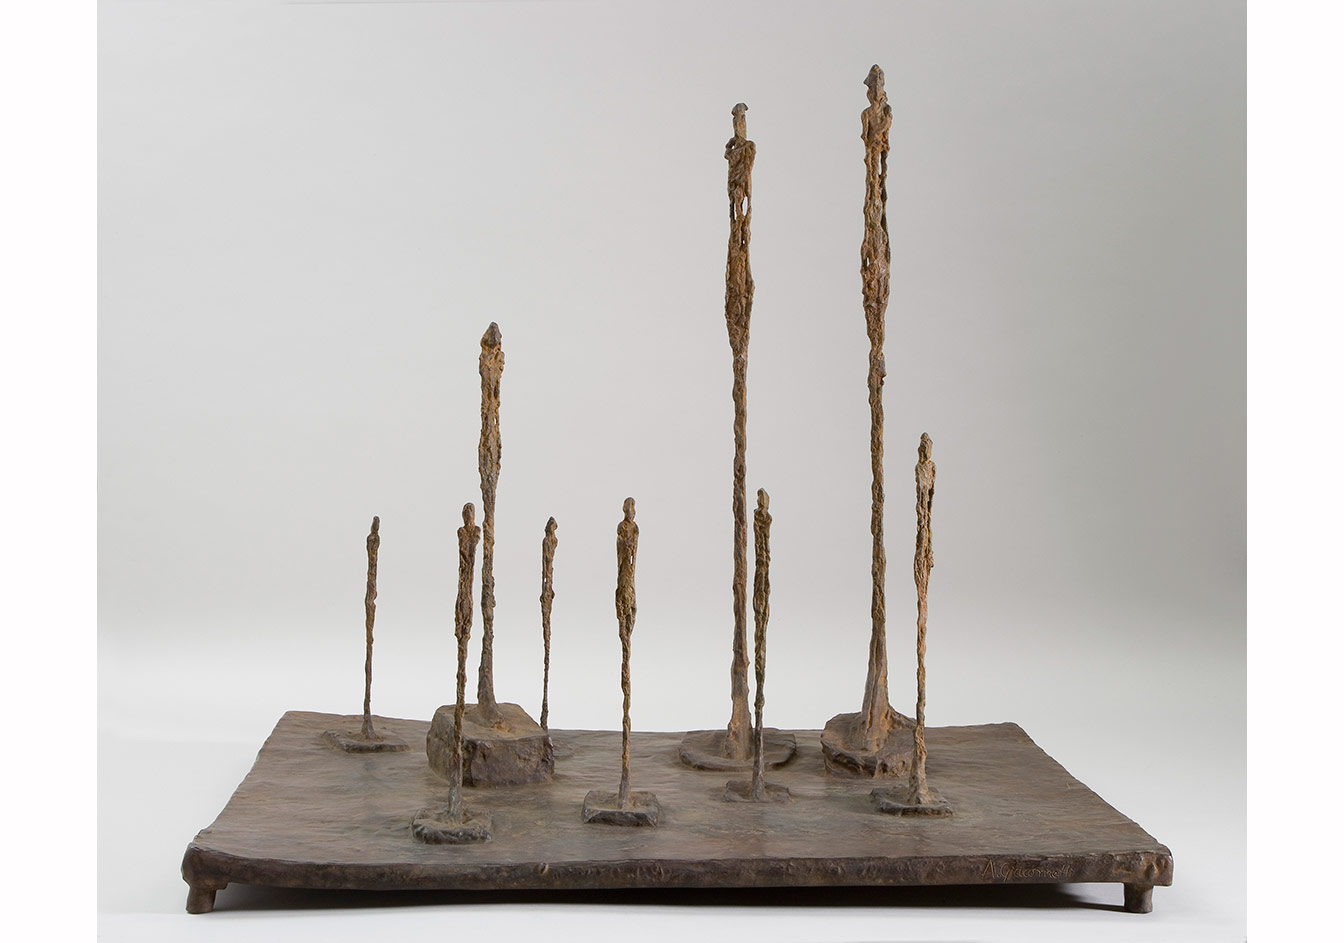 Alberto Giacometti, Orman, 1950 / The Forest, 1950 Bronz / Bronze, 56,99 x 60,98 x 47,30 cm, Giacometti Vakfı Koleksiyonu, Paris, env. 2007-0200 / Giacometti Foundation Collection, Paris, inv. 2007-0200 © Estate Giacometti (Fondation Giacometti + ADAGP) Paris, 2015